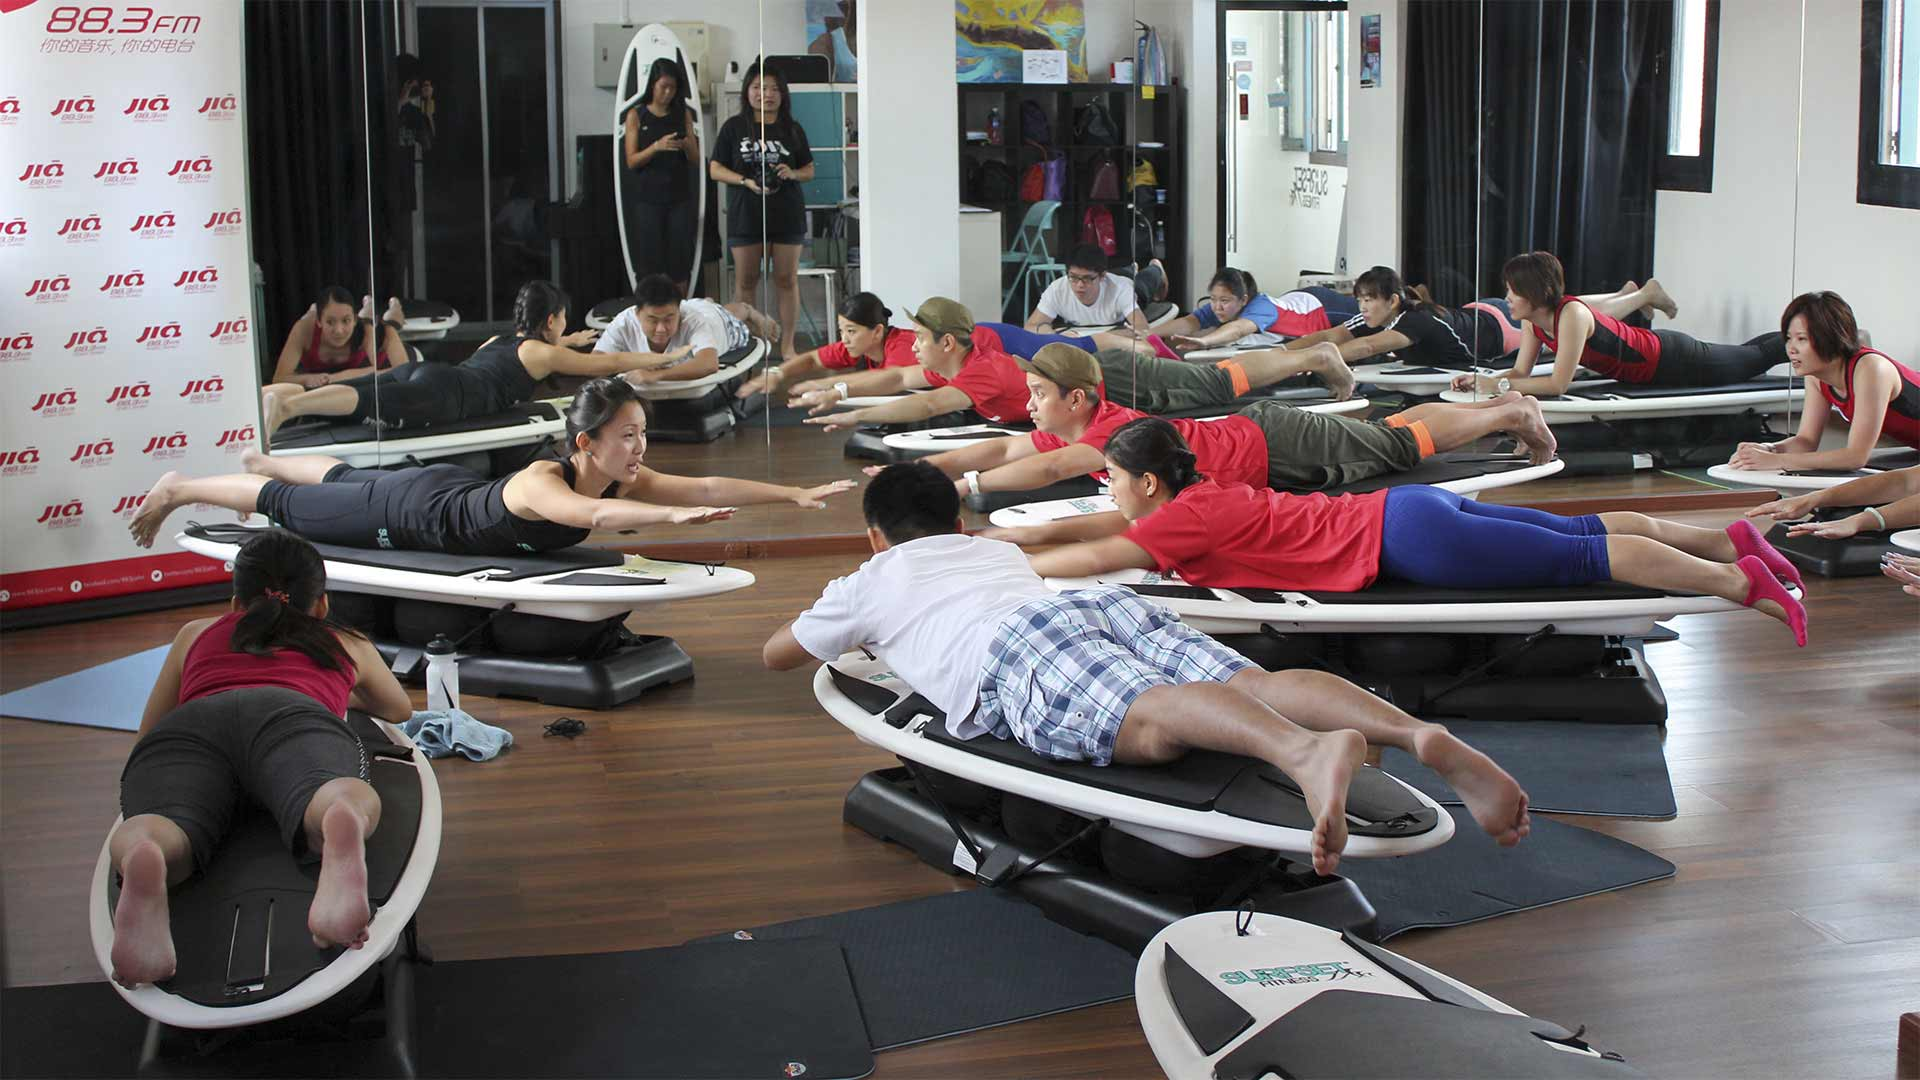 Welcome to SURFSET Fitness!